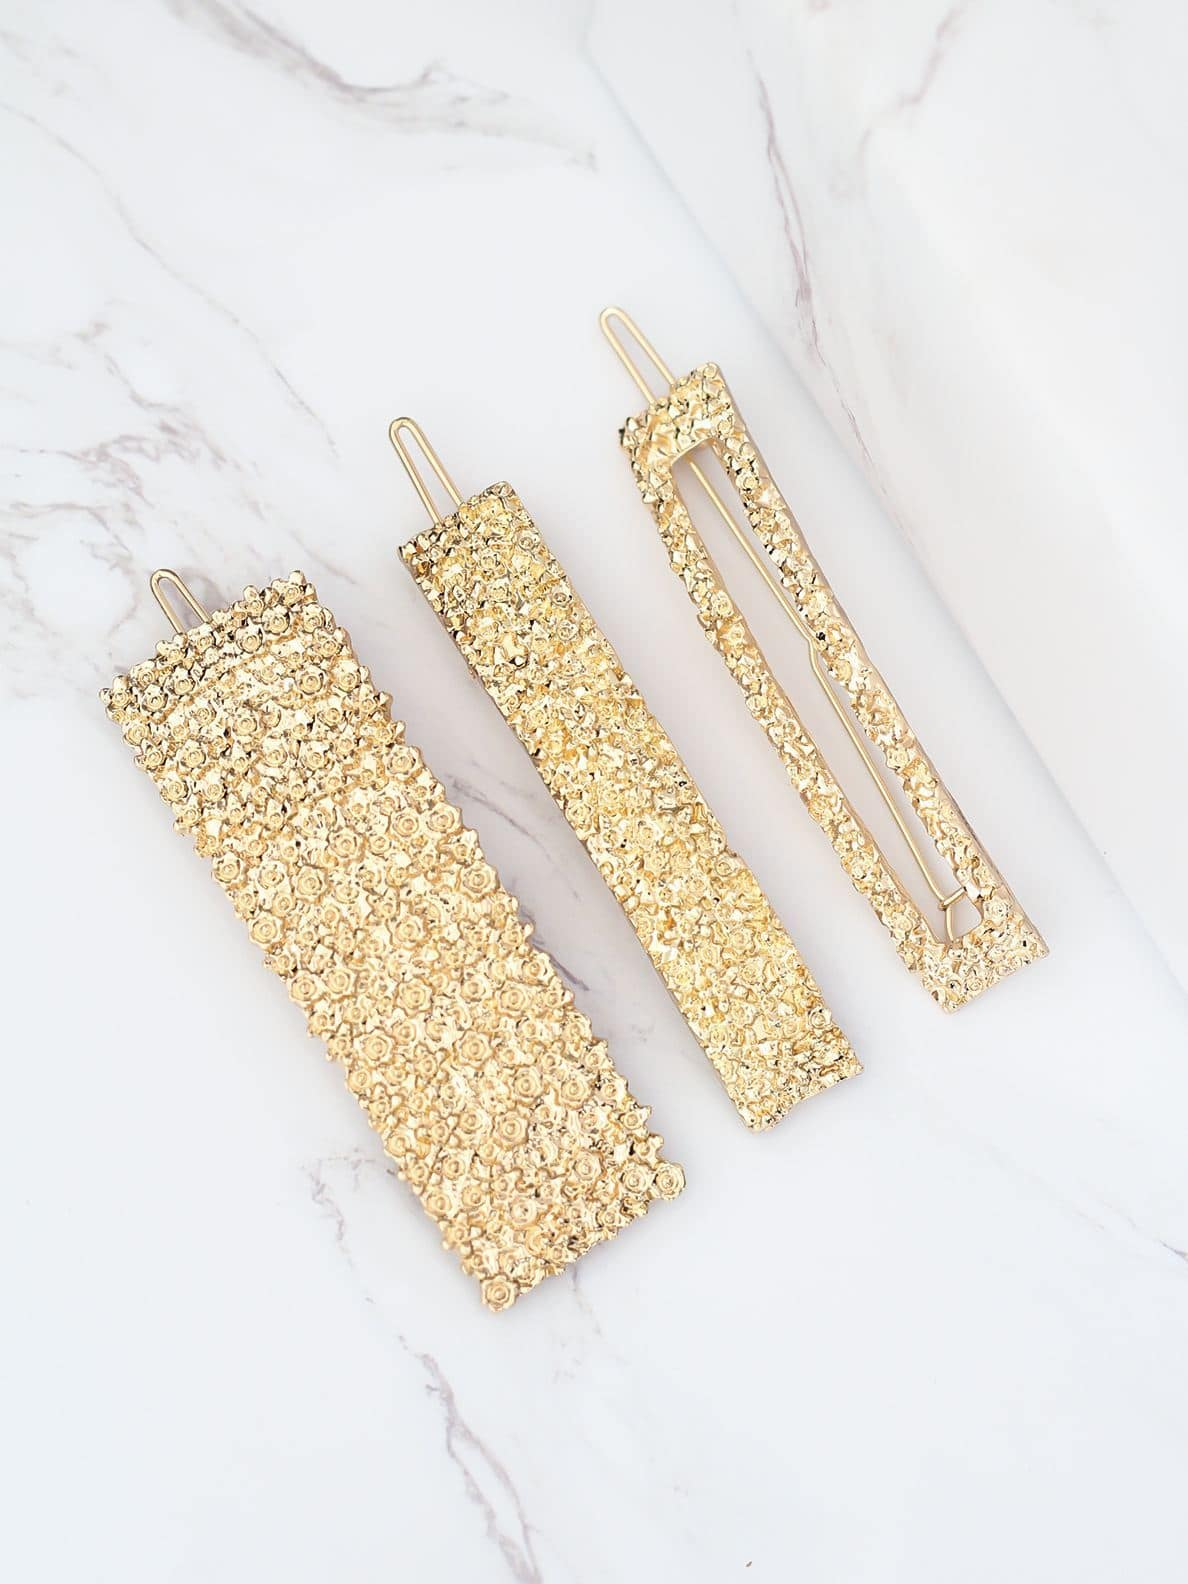 Bellofox Crumble Hair Pins Hair Accessories